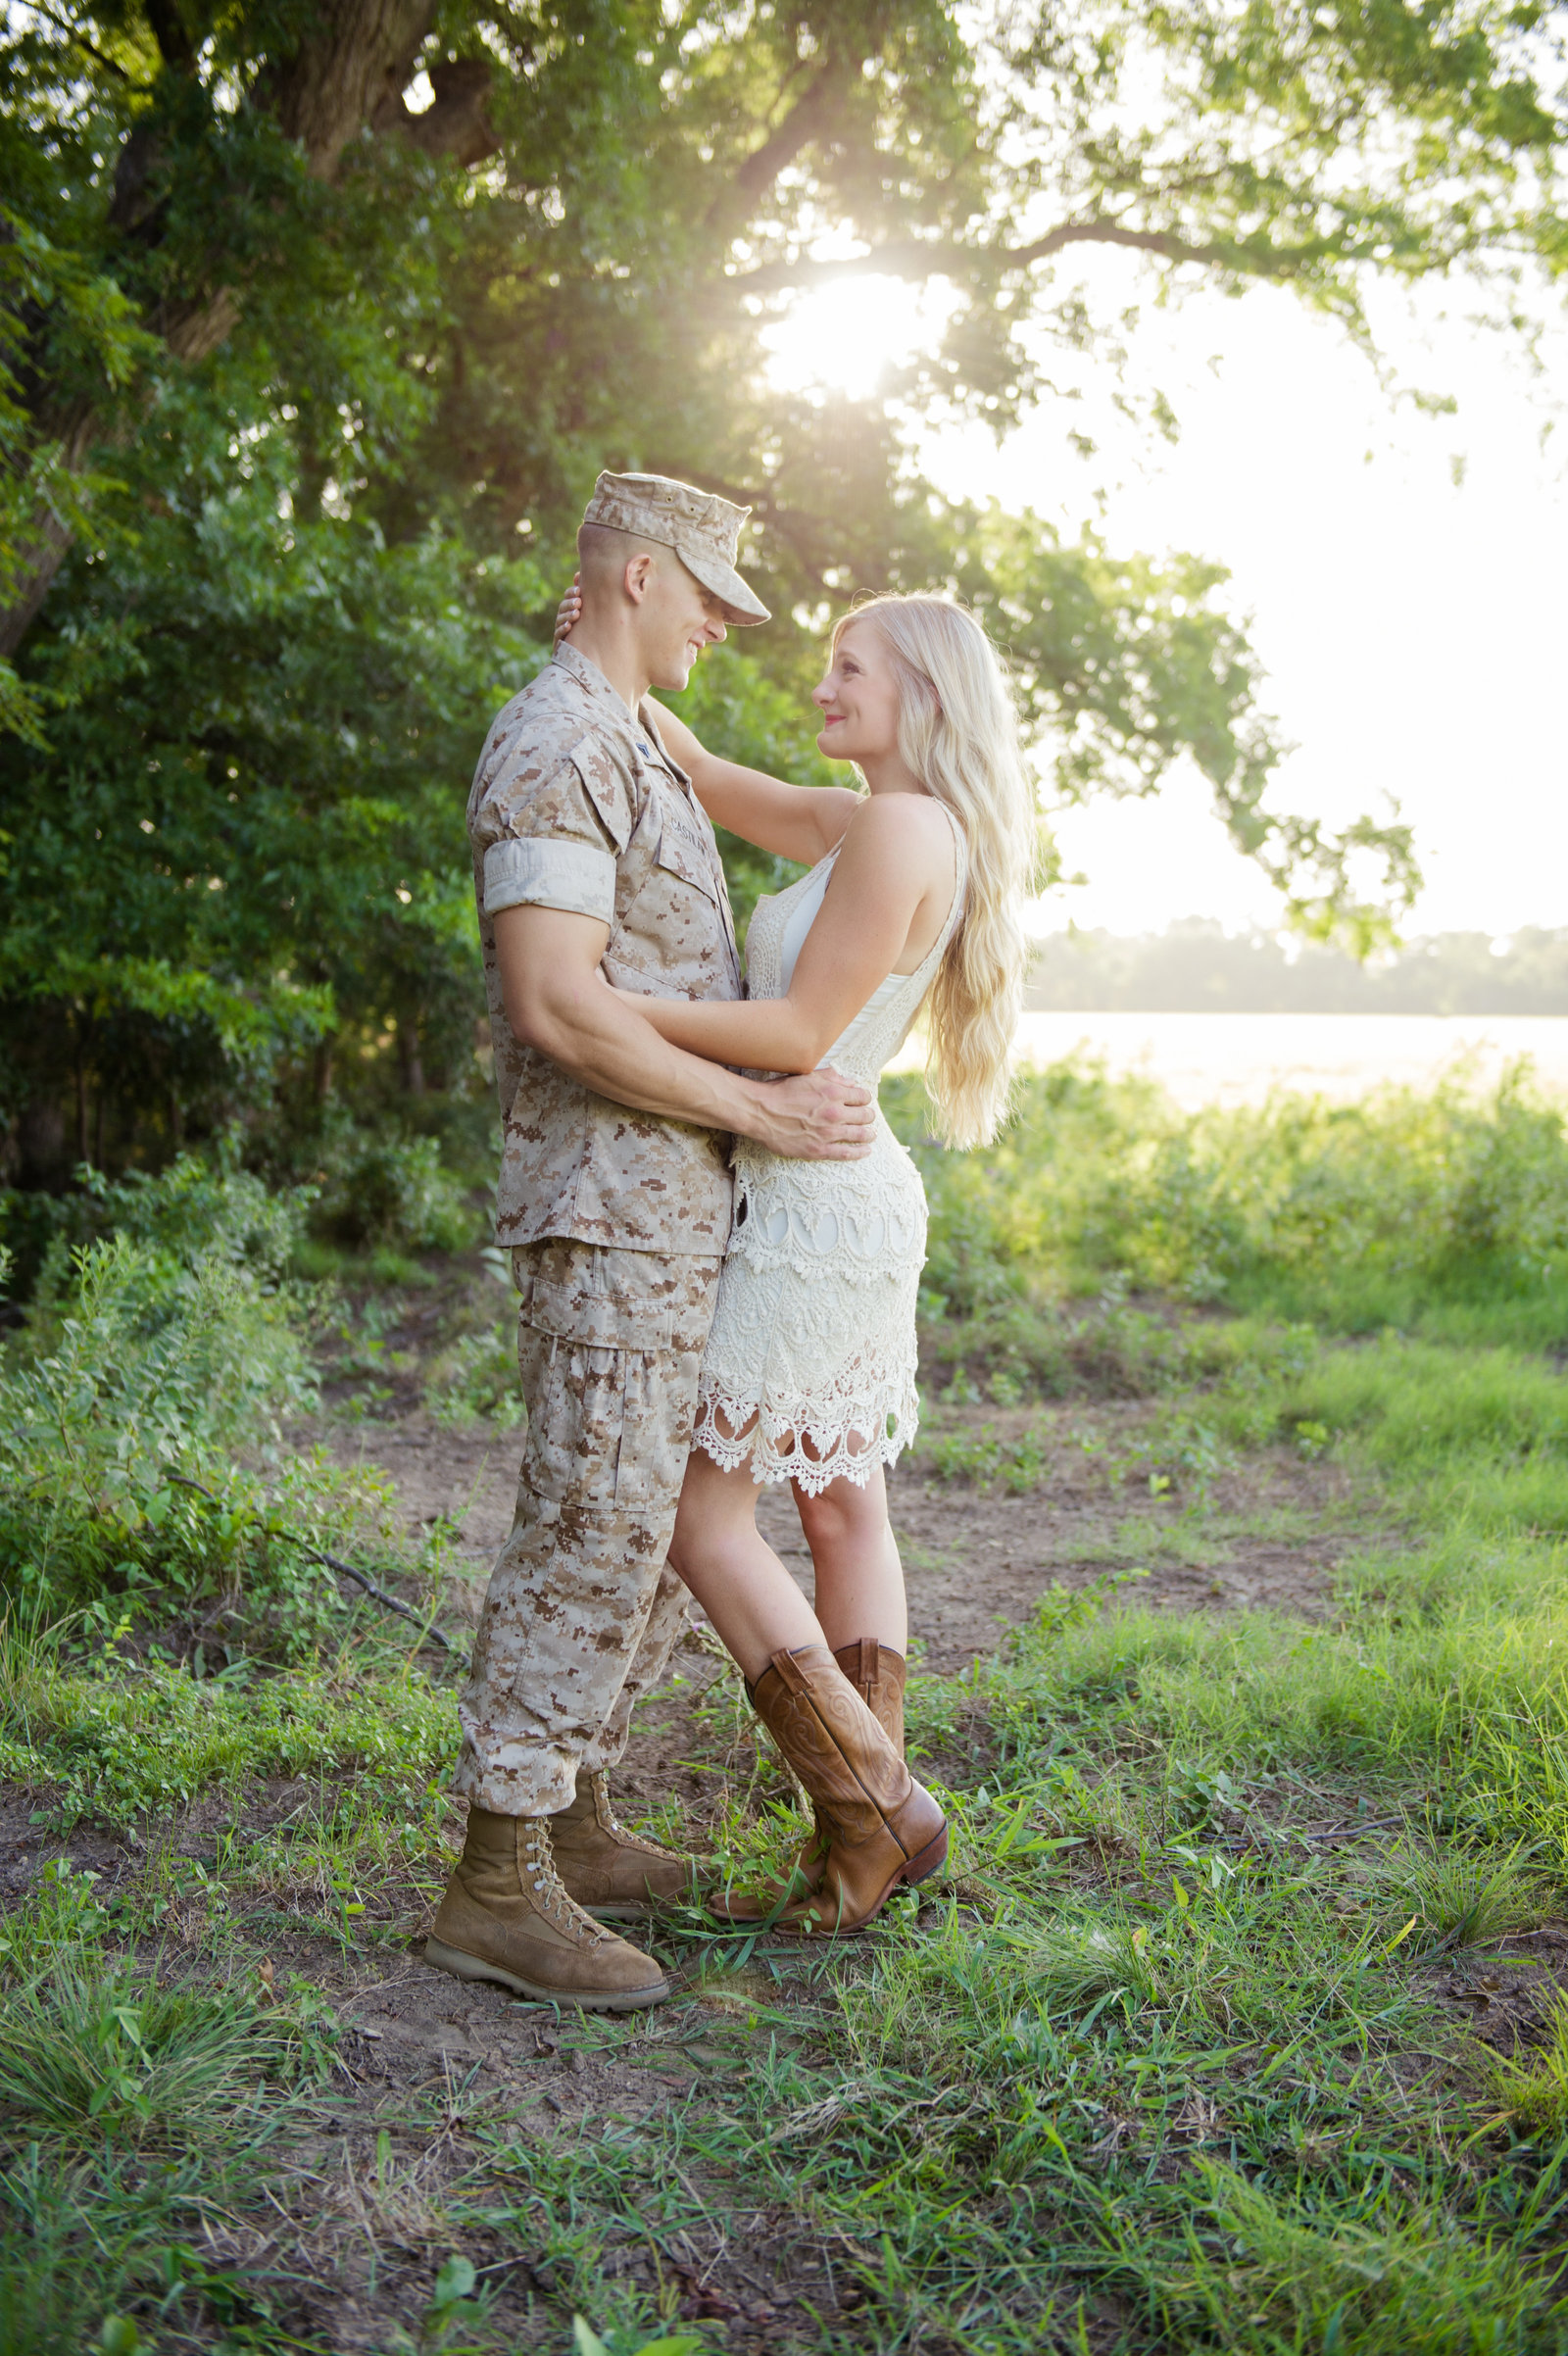 Military Engagement Photo by Brittany Barclay Photography